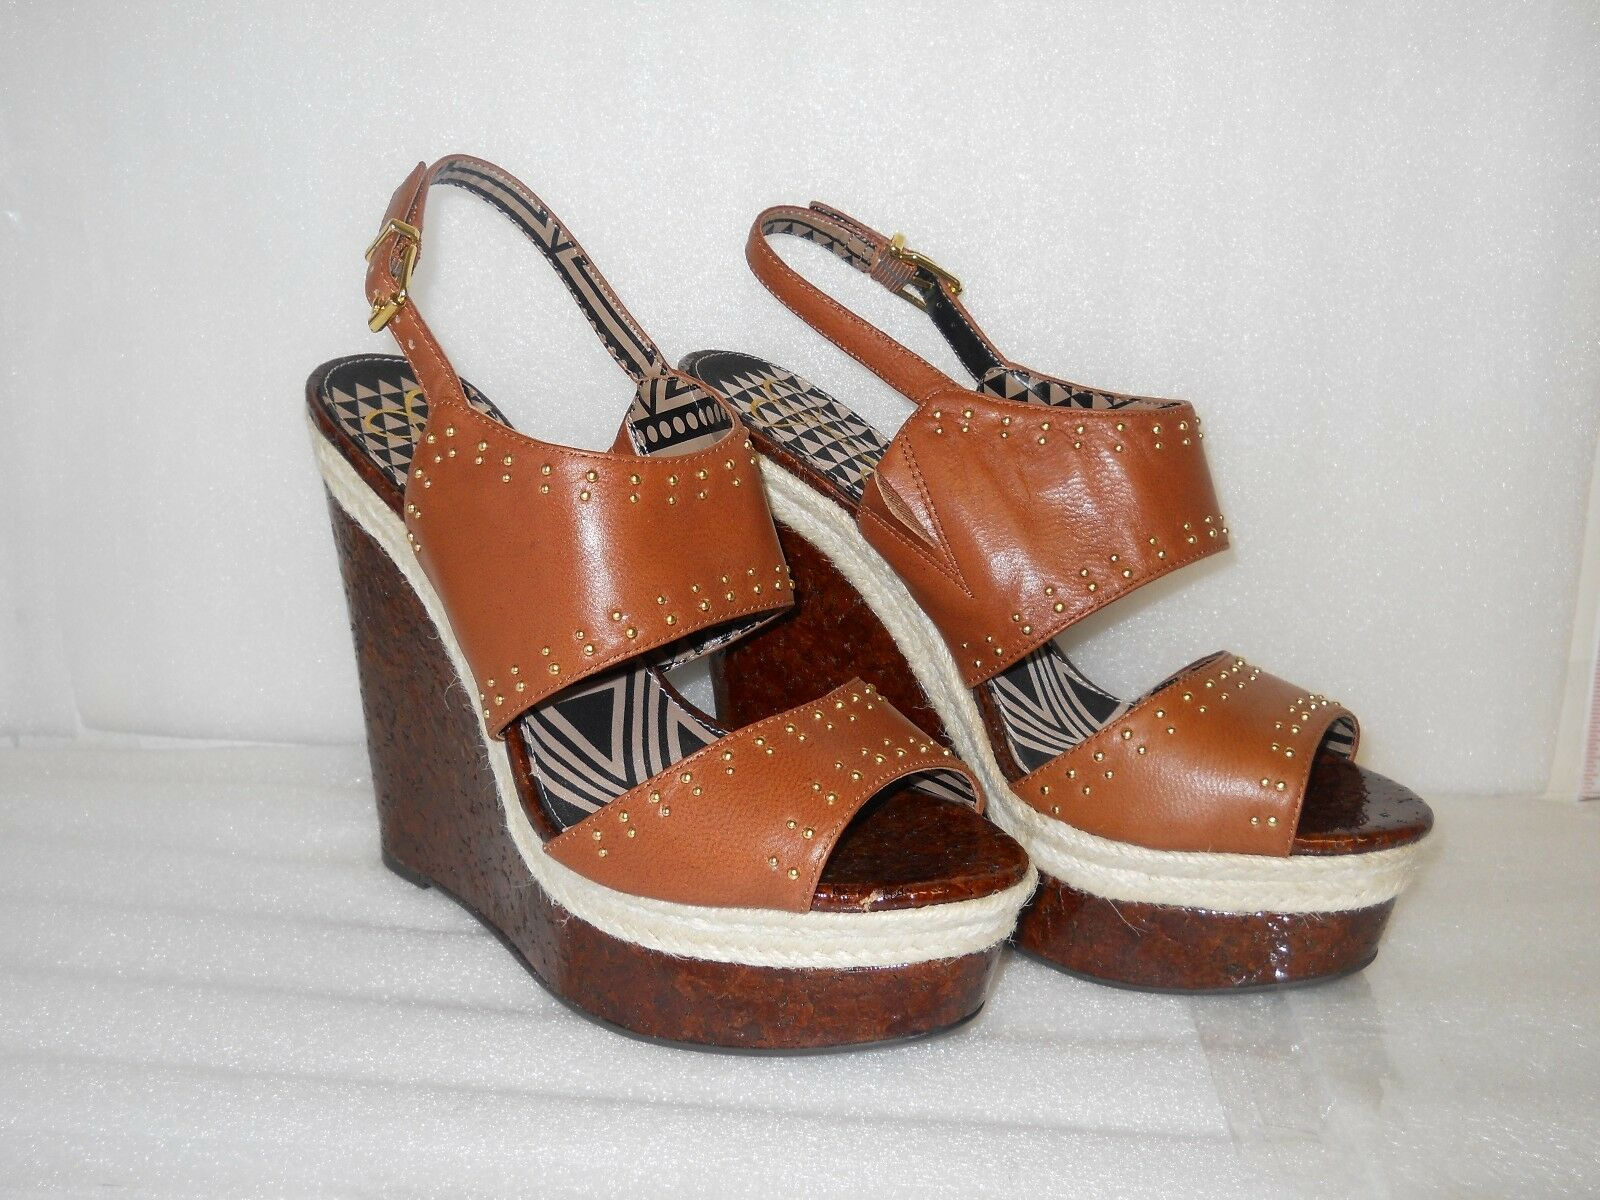 Jessica Simpson New Womens Gena Brown Leather Wedge Platform Sandals 10 M shoes